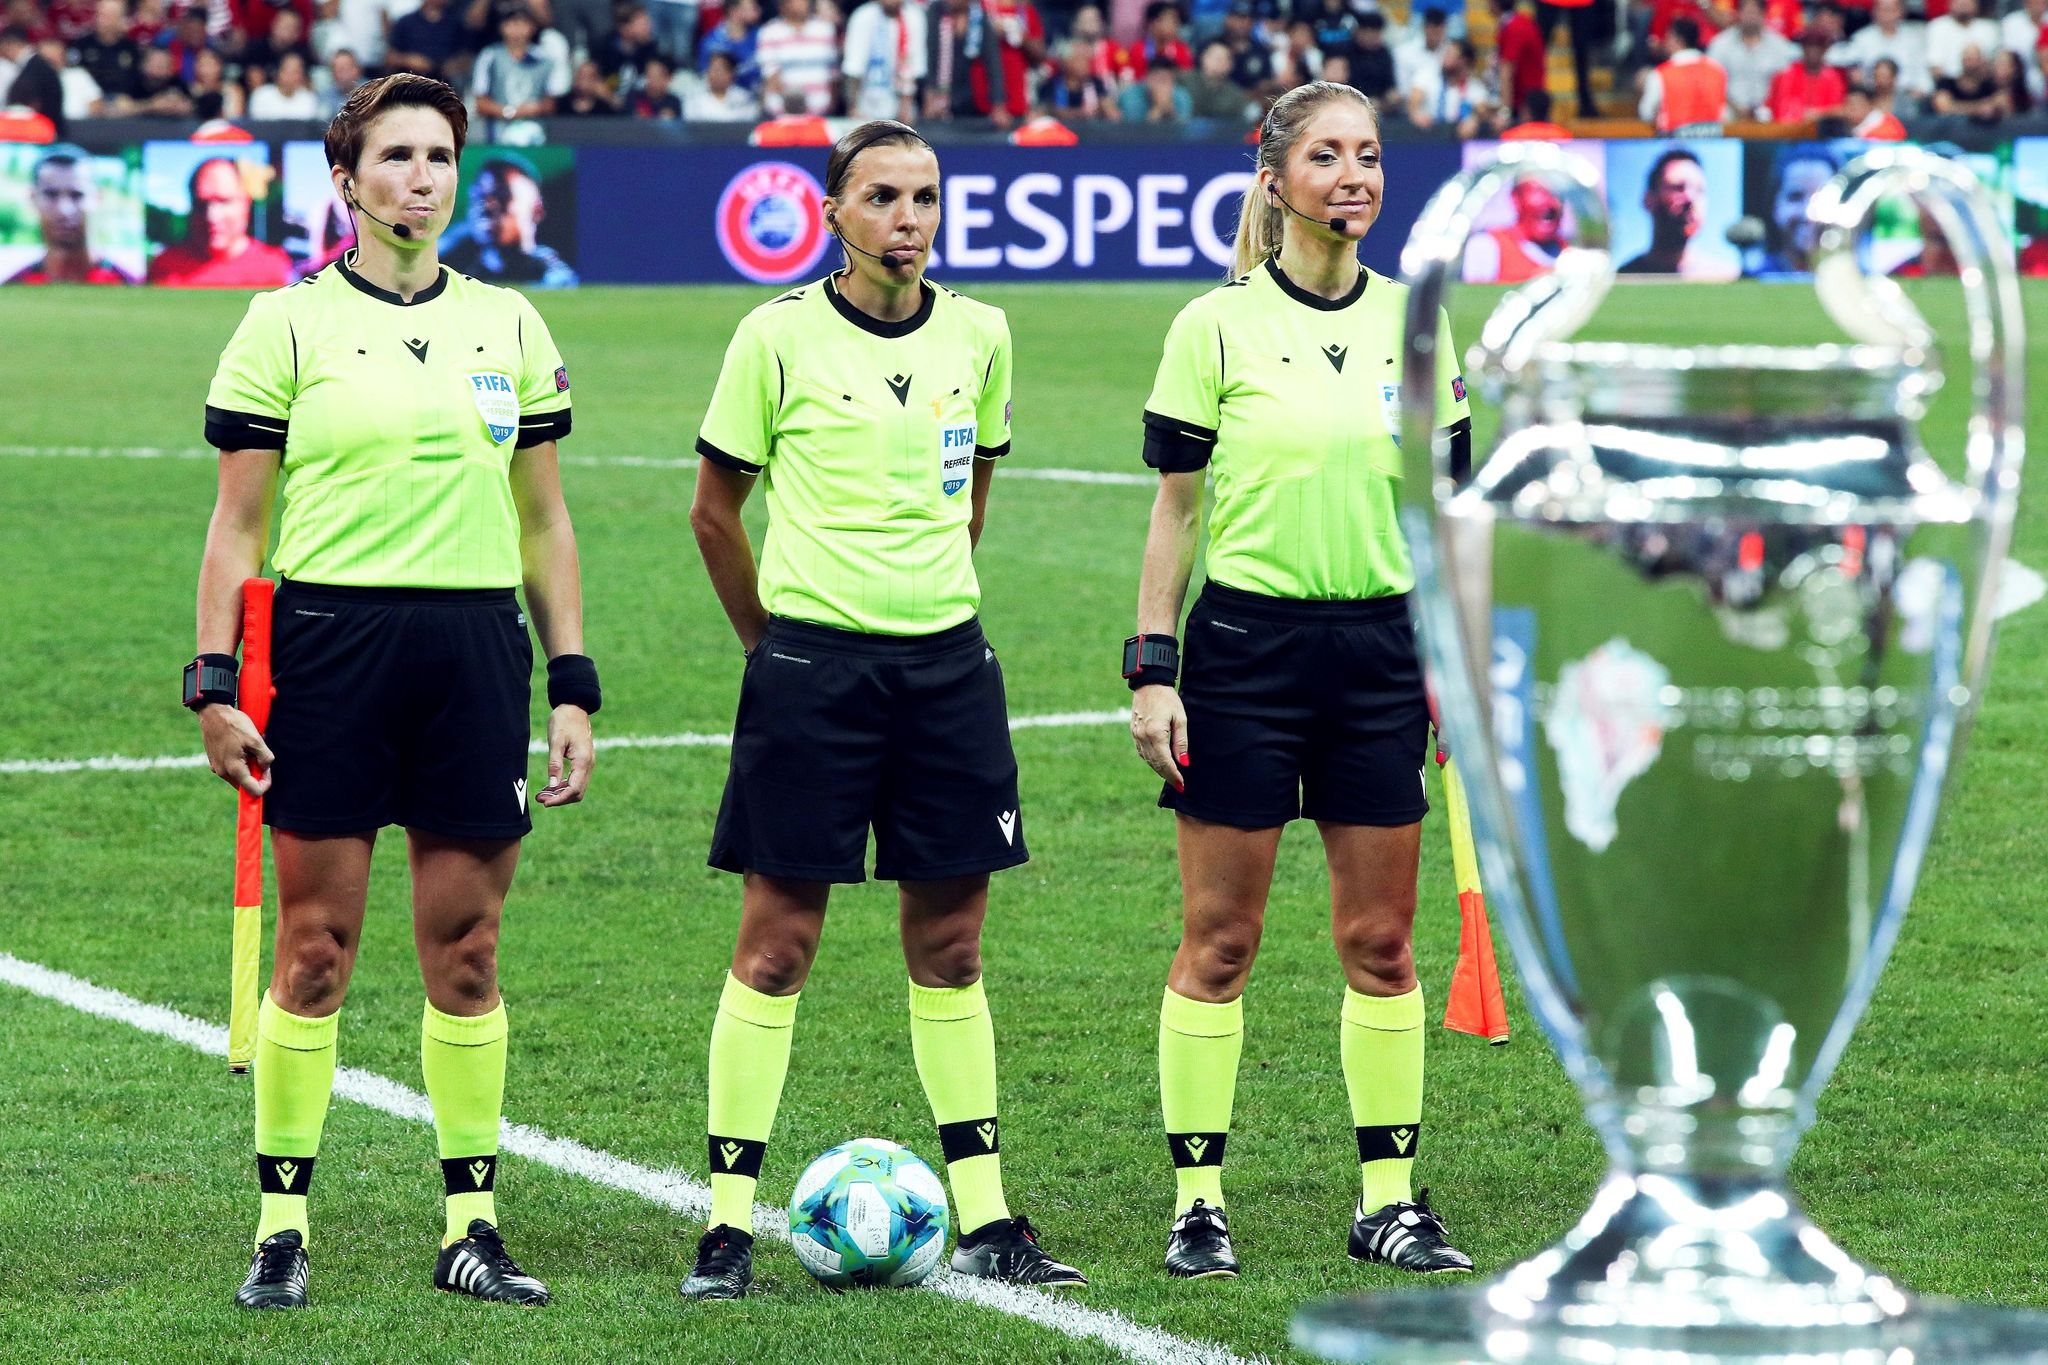 Istanbul (Turkey), 14/08/2019.- French referee Stephanie <HIT>Frappart</HIT> (C) and her assistants before the UEFA Super Cup soccer match between Liverpool FC and Chelsea FC in Istanbul, Turkey, 14 August 2019. (Turquía, Estanbul) EFE/EPA/TOLGA BOZOGLU